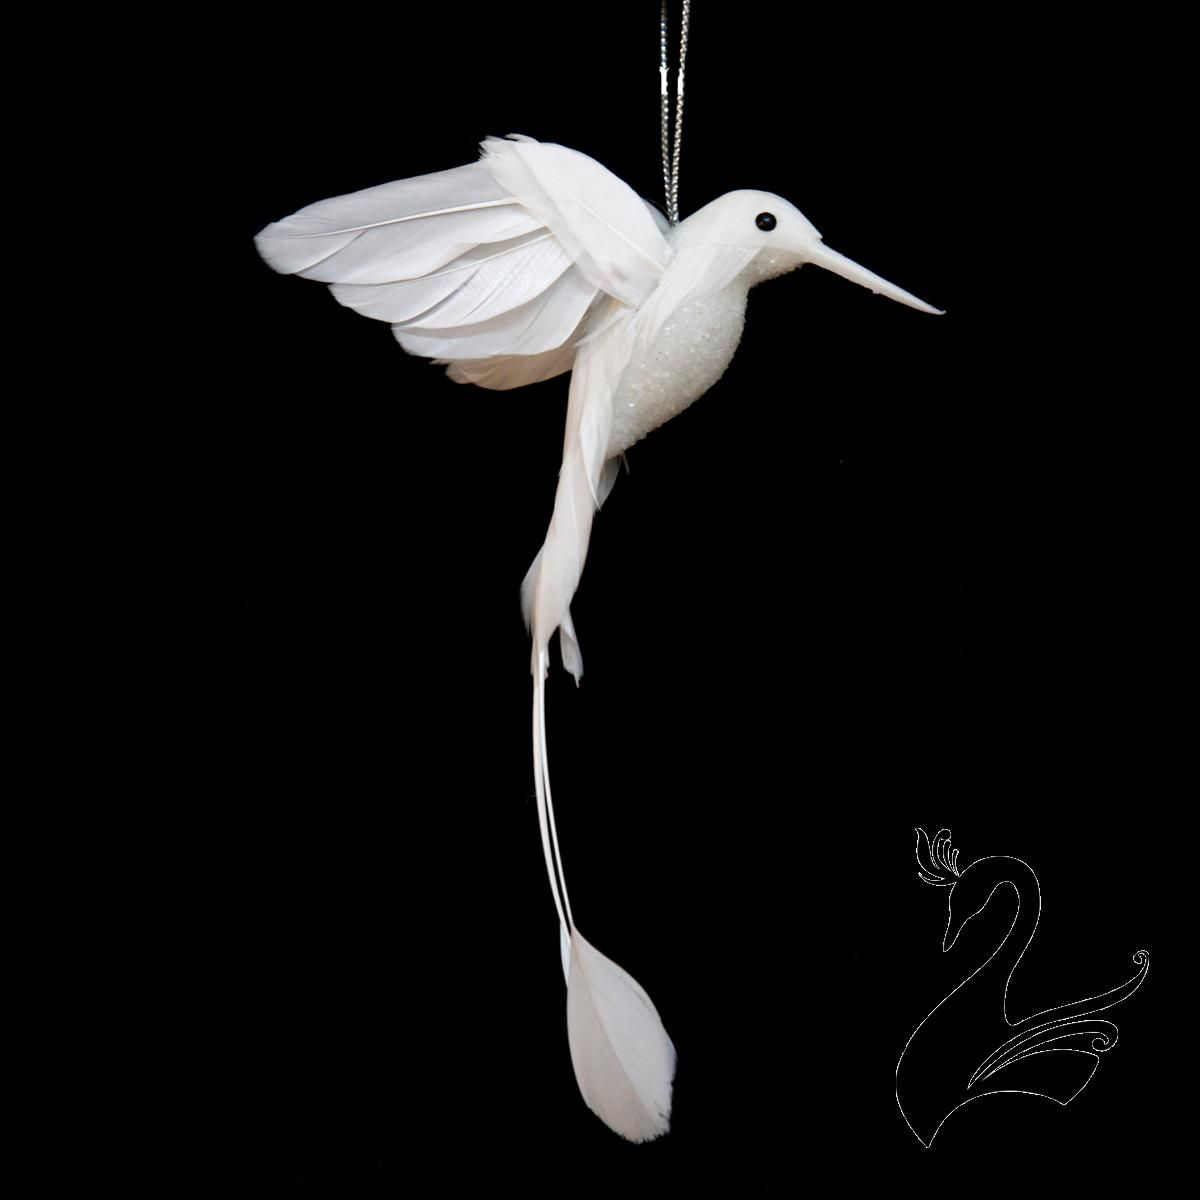 Bird Hummingbird with Feathered Wings Tail 11x20cm White Craft Millinery   eBay